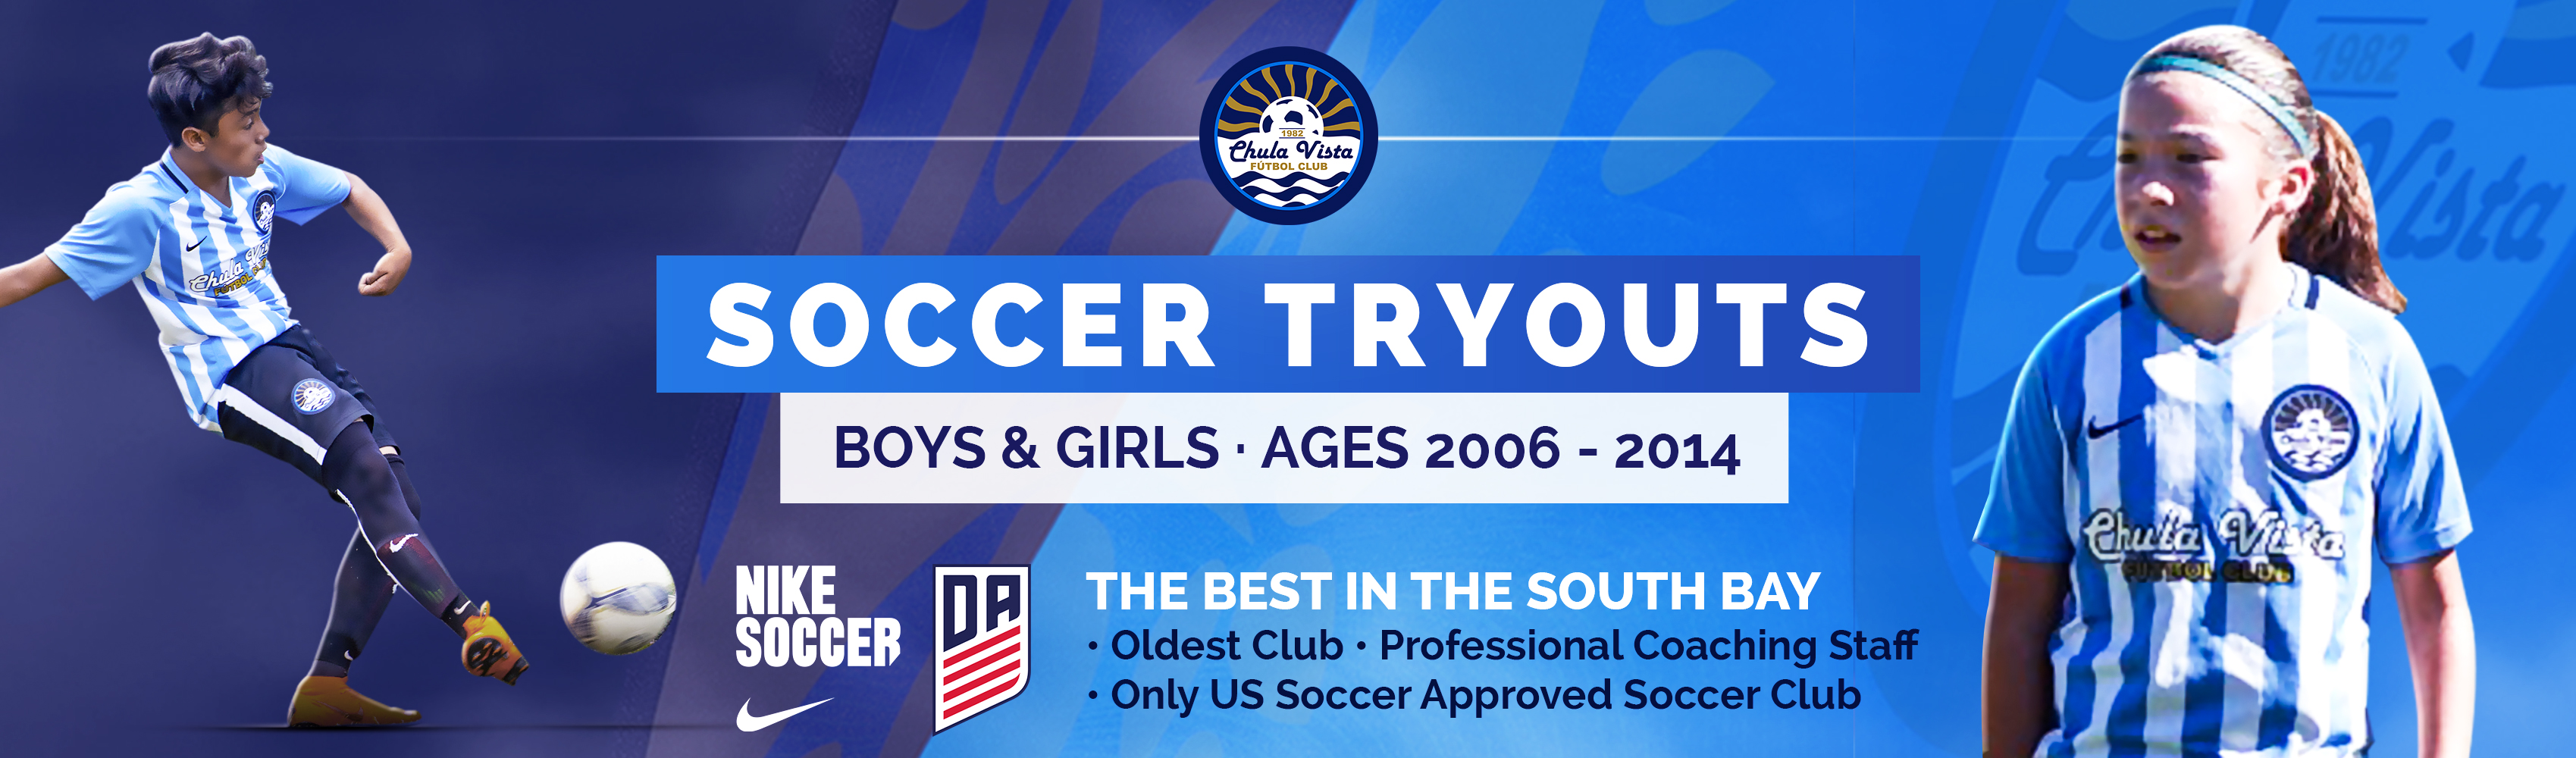 Chula Vista FC Announces Youth Tryouts